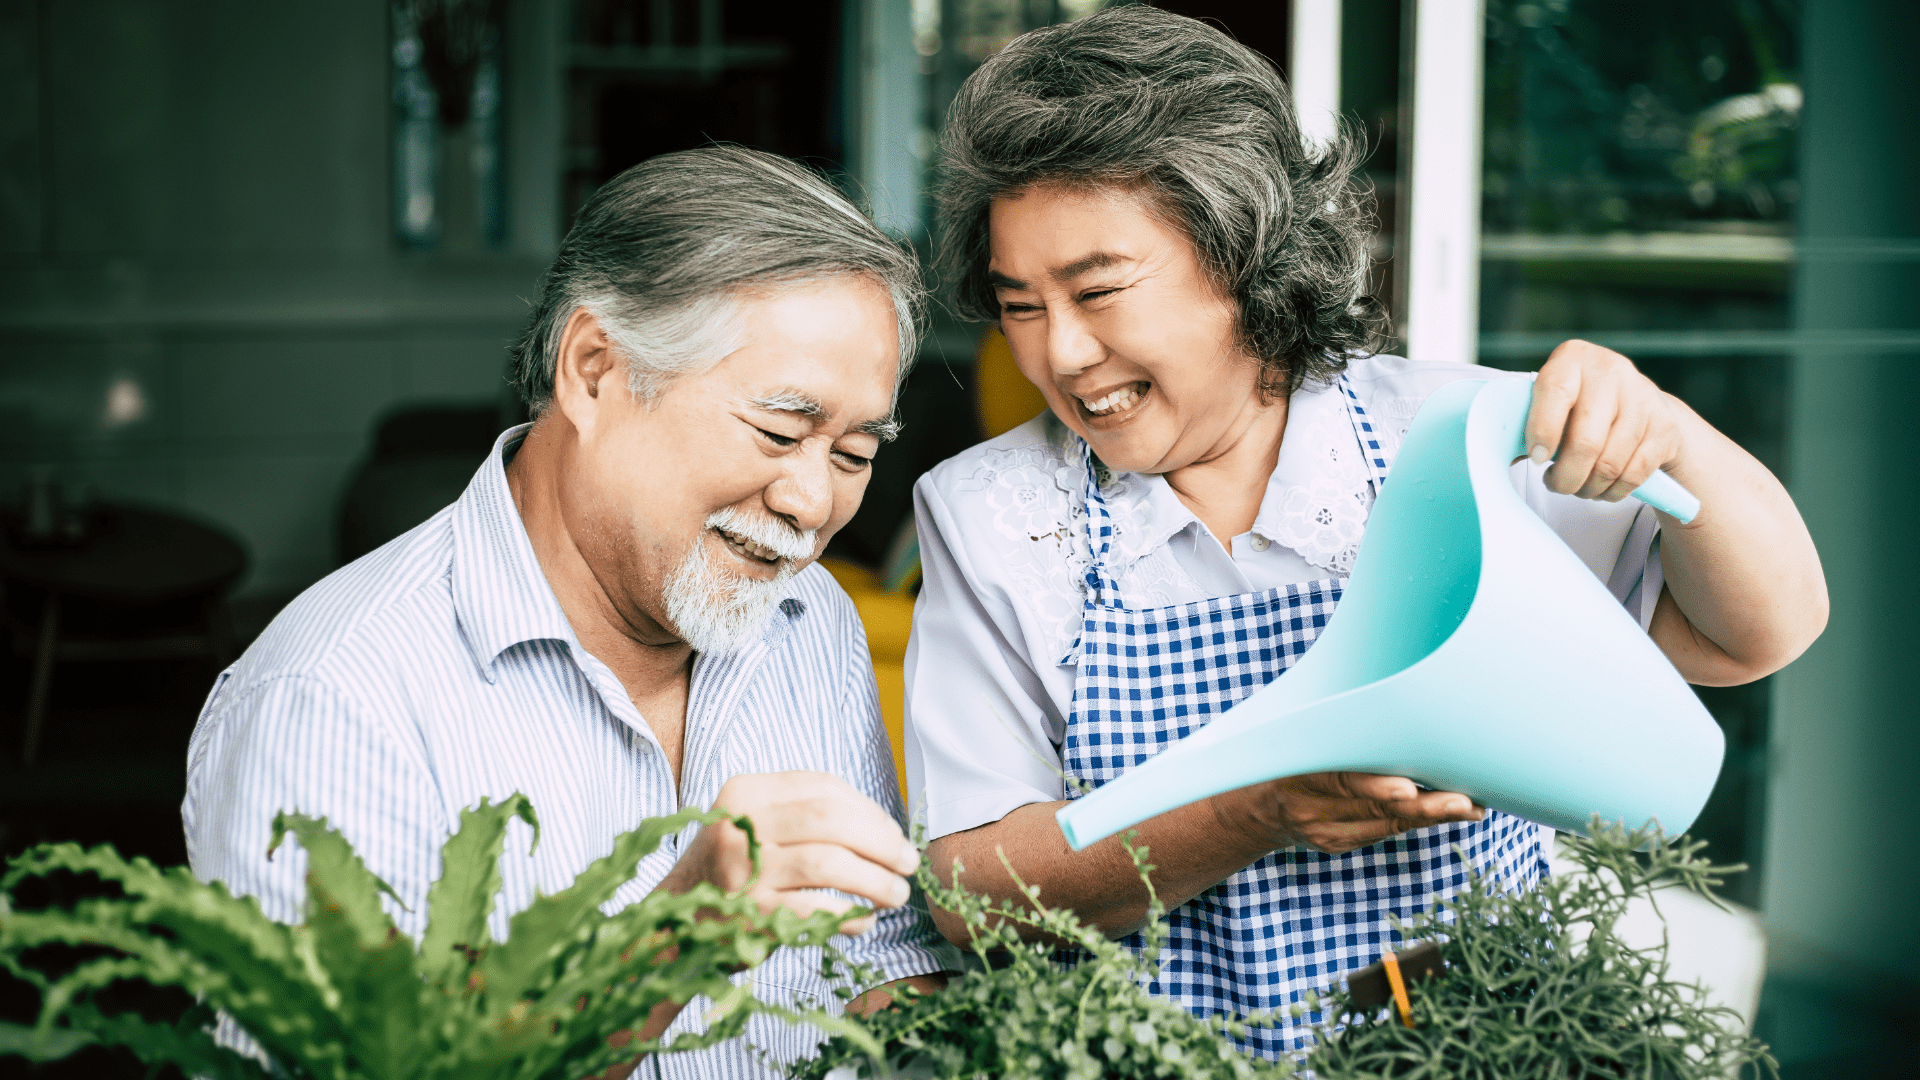 husband and wife watering flowers, using annuities for retirement savings